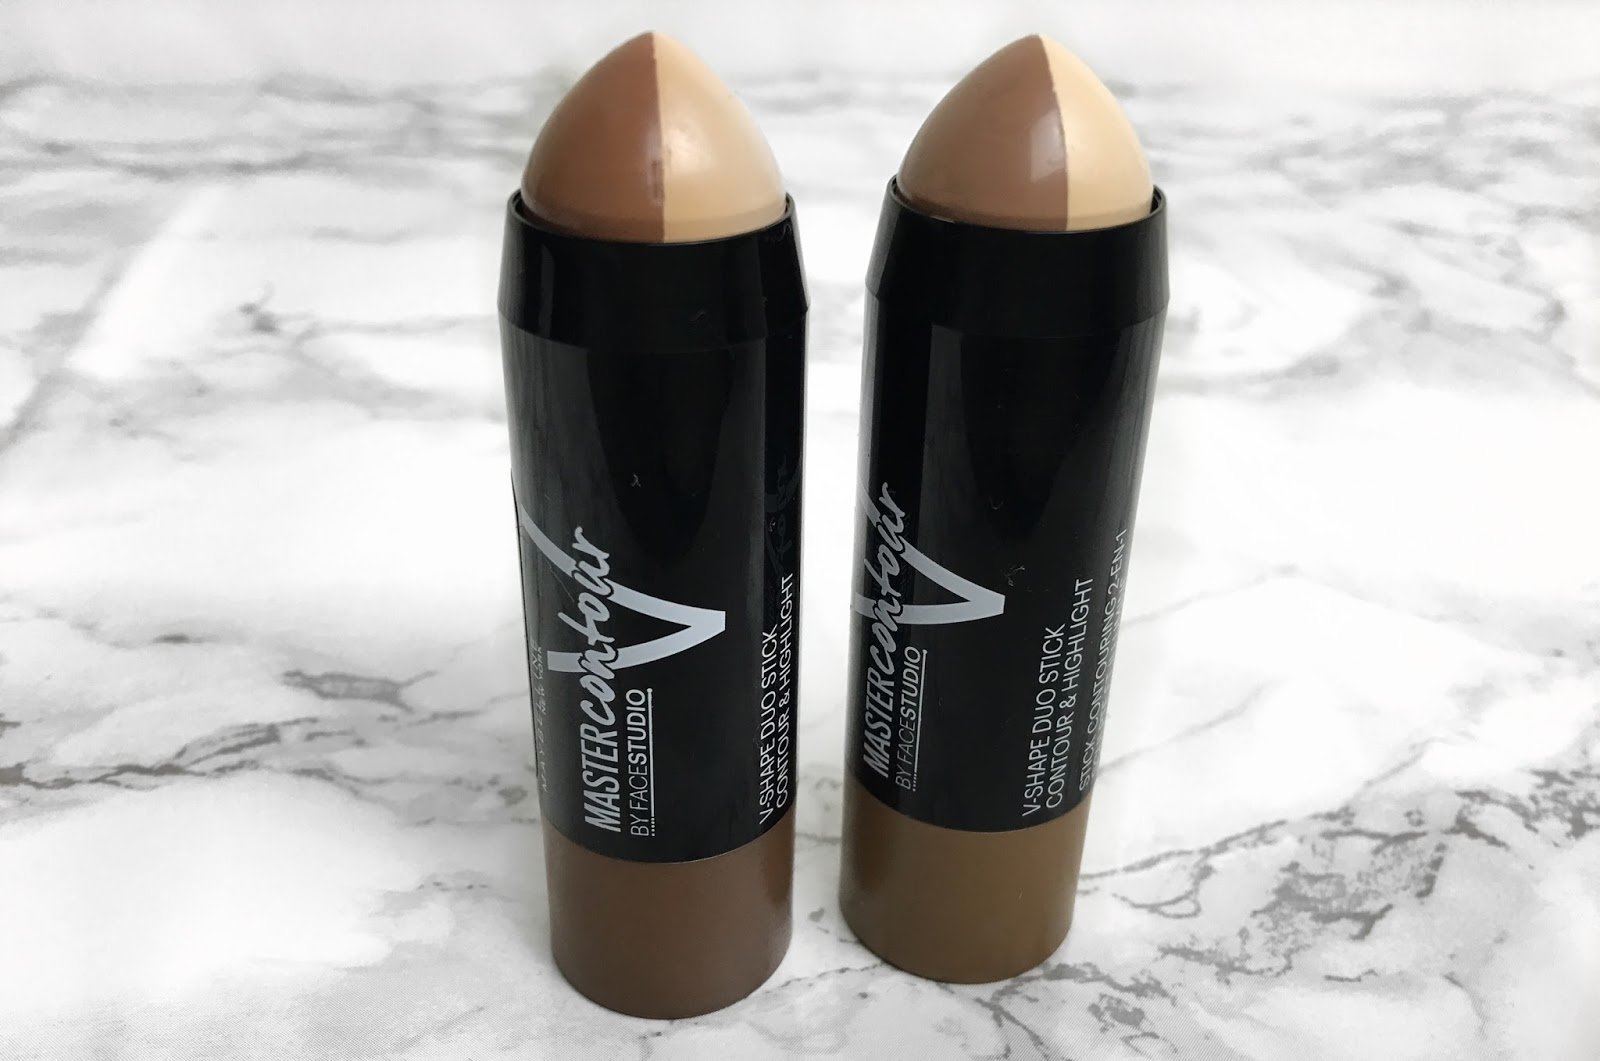 Maybelline Master Contour Sticks Oh Its Sare Face Studio V Shape Powder 01 Light Med It Comes In Two Different Colours And 02 Medium Retails At A Price Of 699